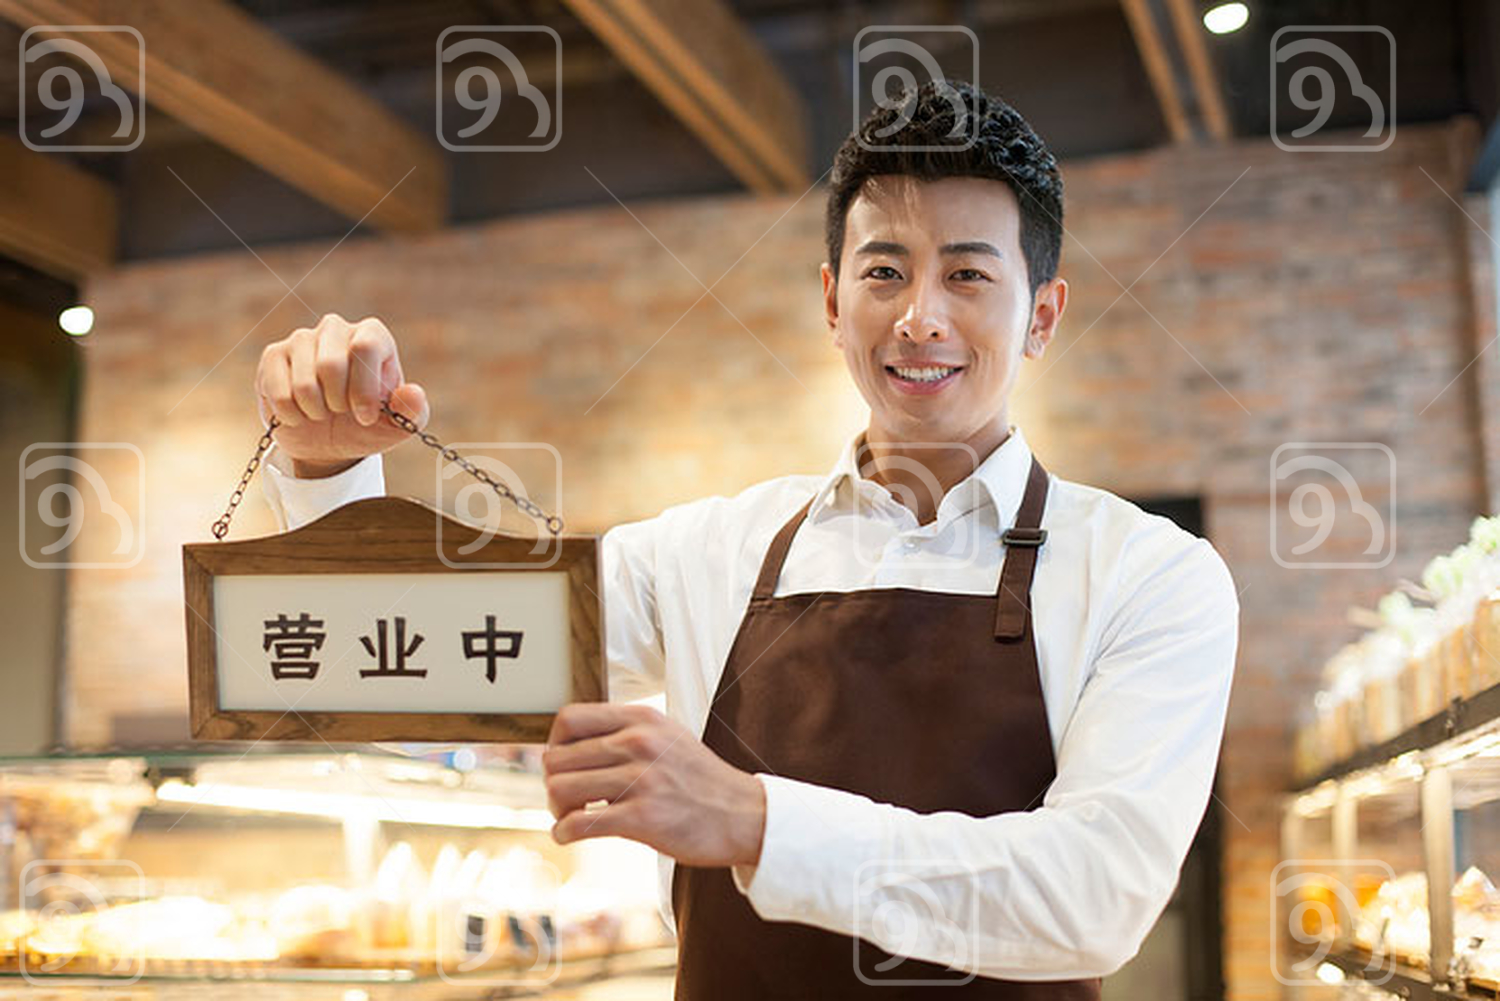 Young Chinese man holding an open sign